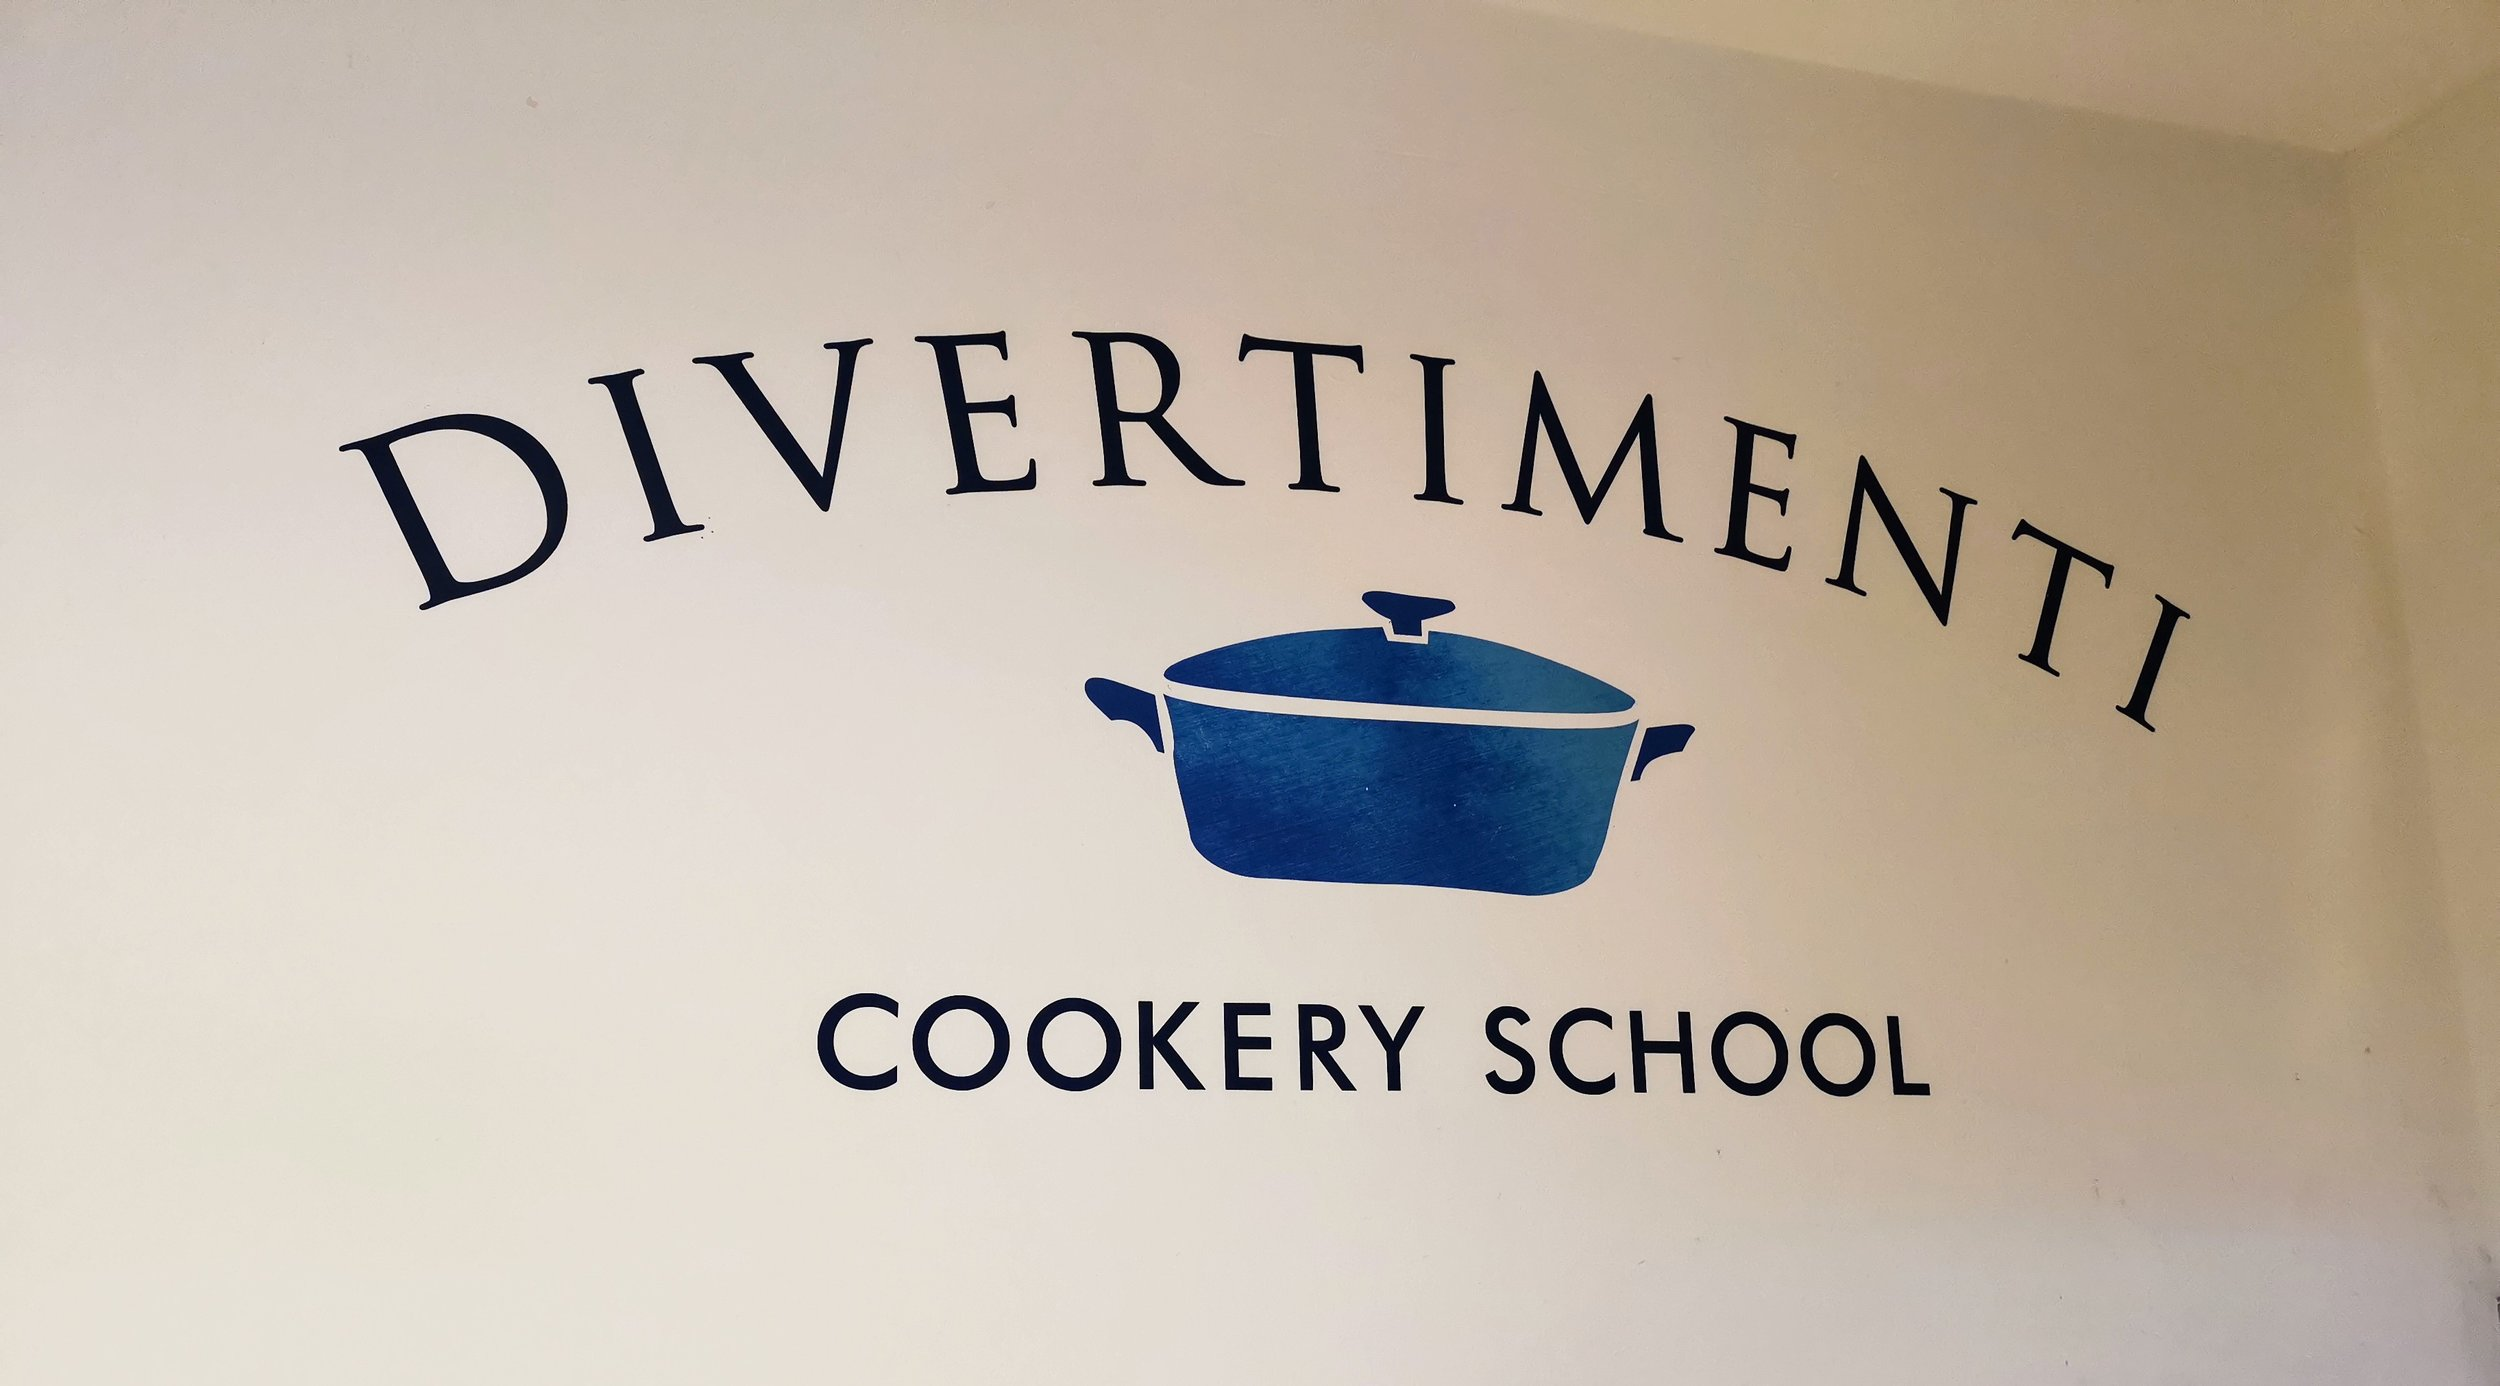 Divertimenti Cooking School